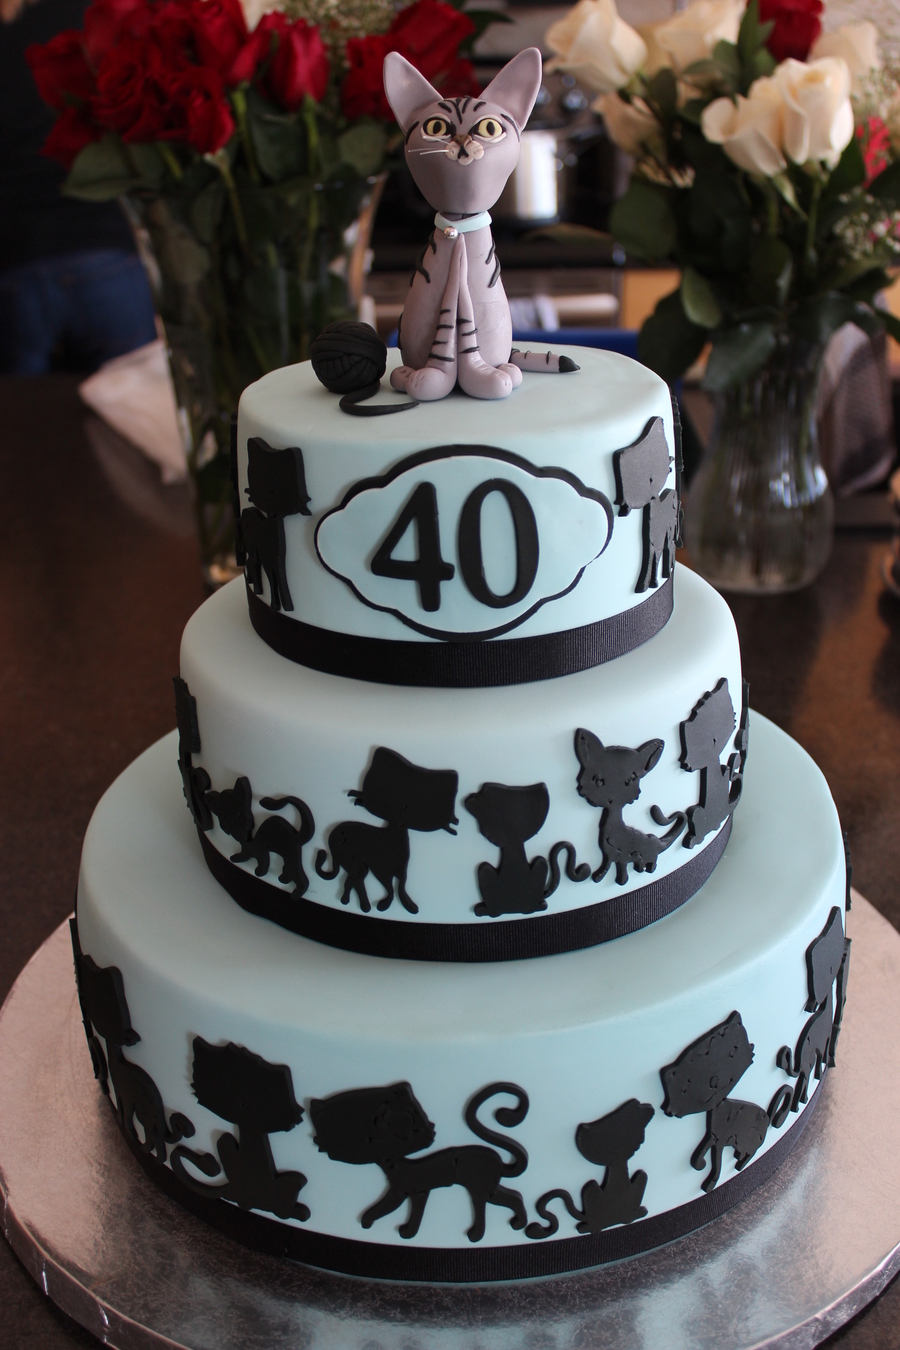 900 74812463sO 40th birthday cake client requested that the cake have 40 cats on it as well as the topper that resembled the family cat Birthday Cake Ideas For  Year Old Woman